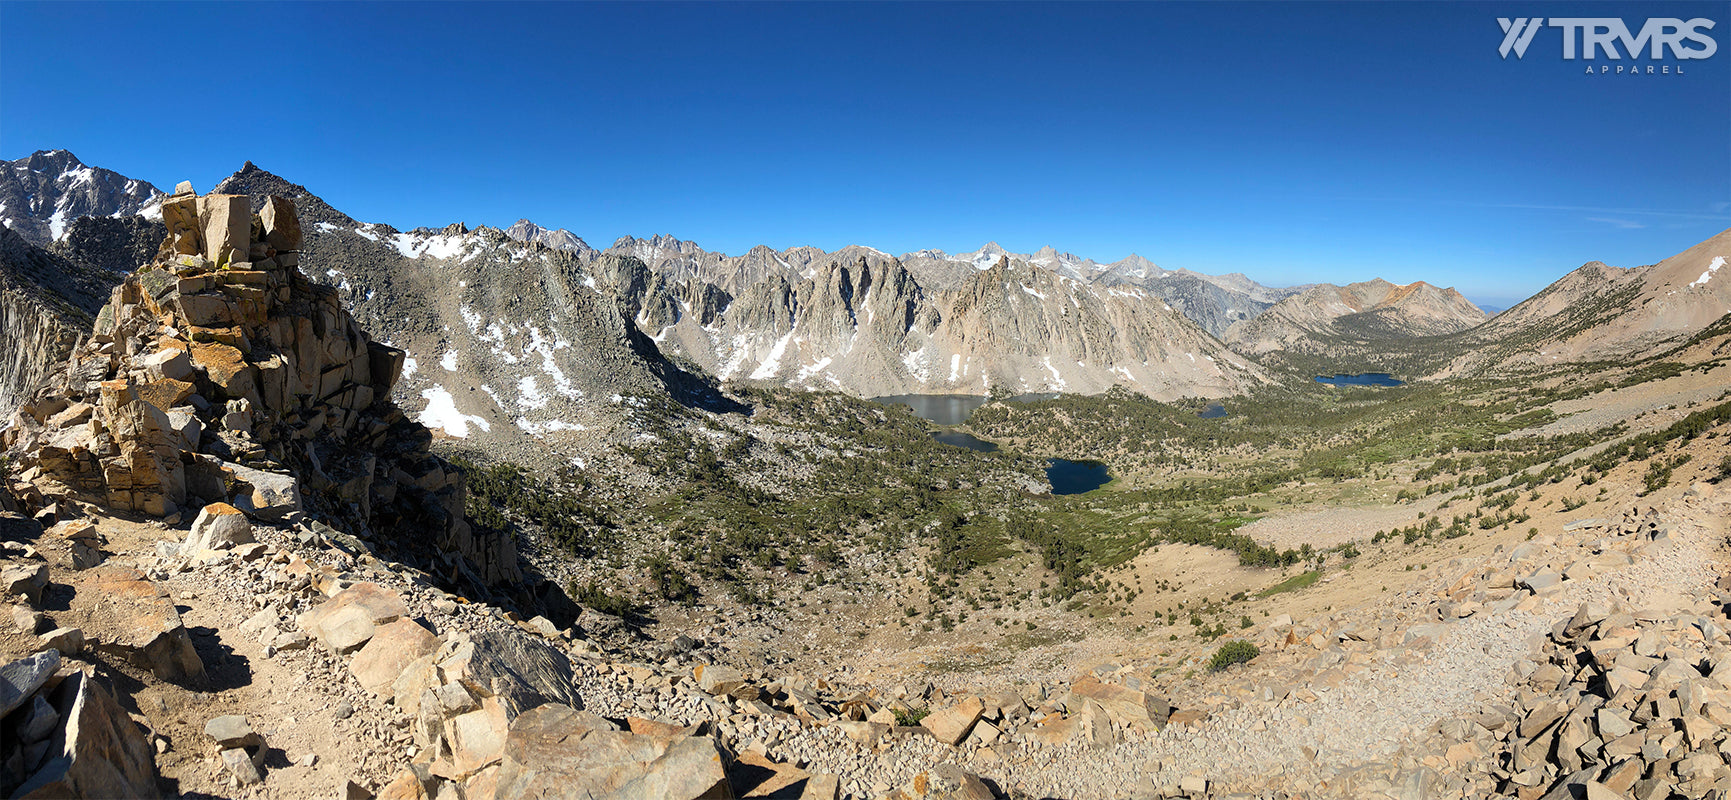 Kearsarge Pinnacles & Lakes via Pass Trail - Inyo National Forest | TRVRS APPAREL